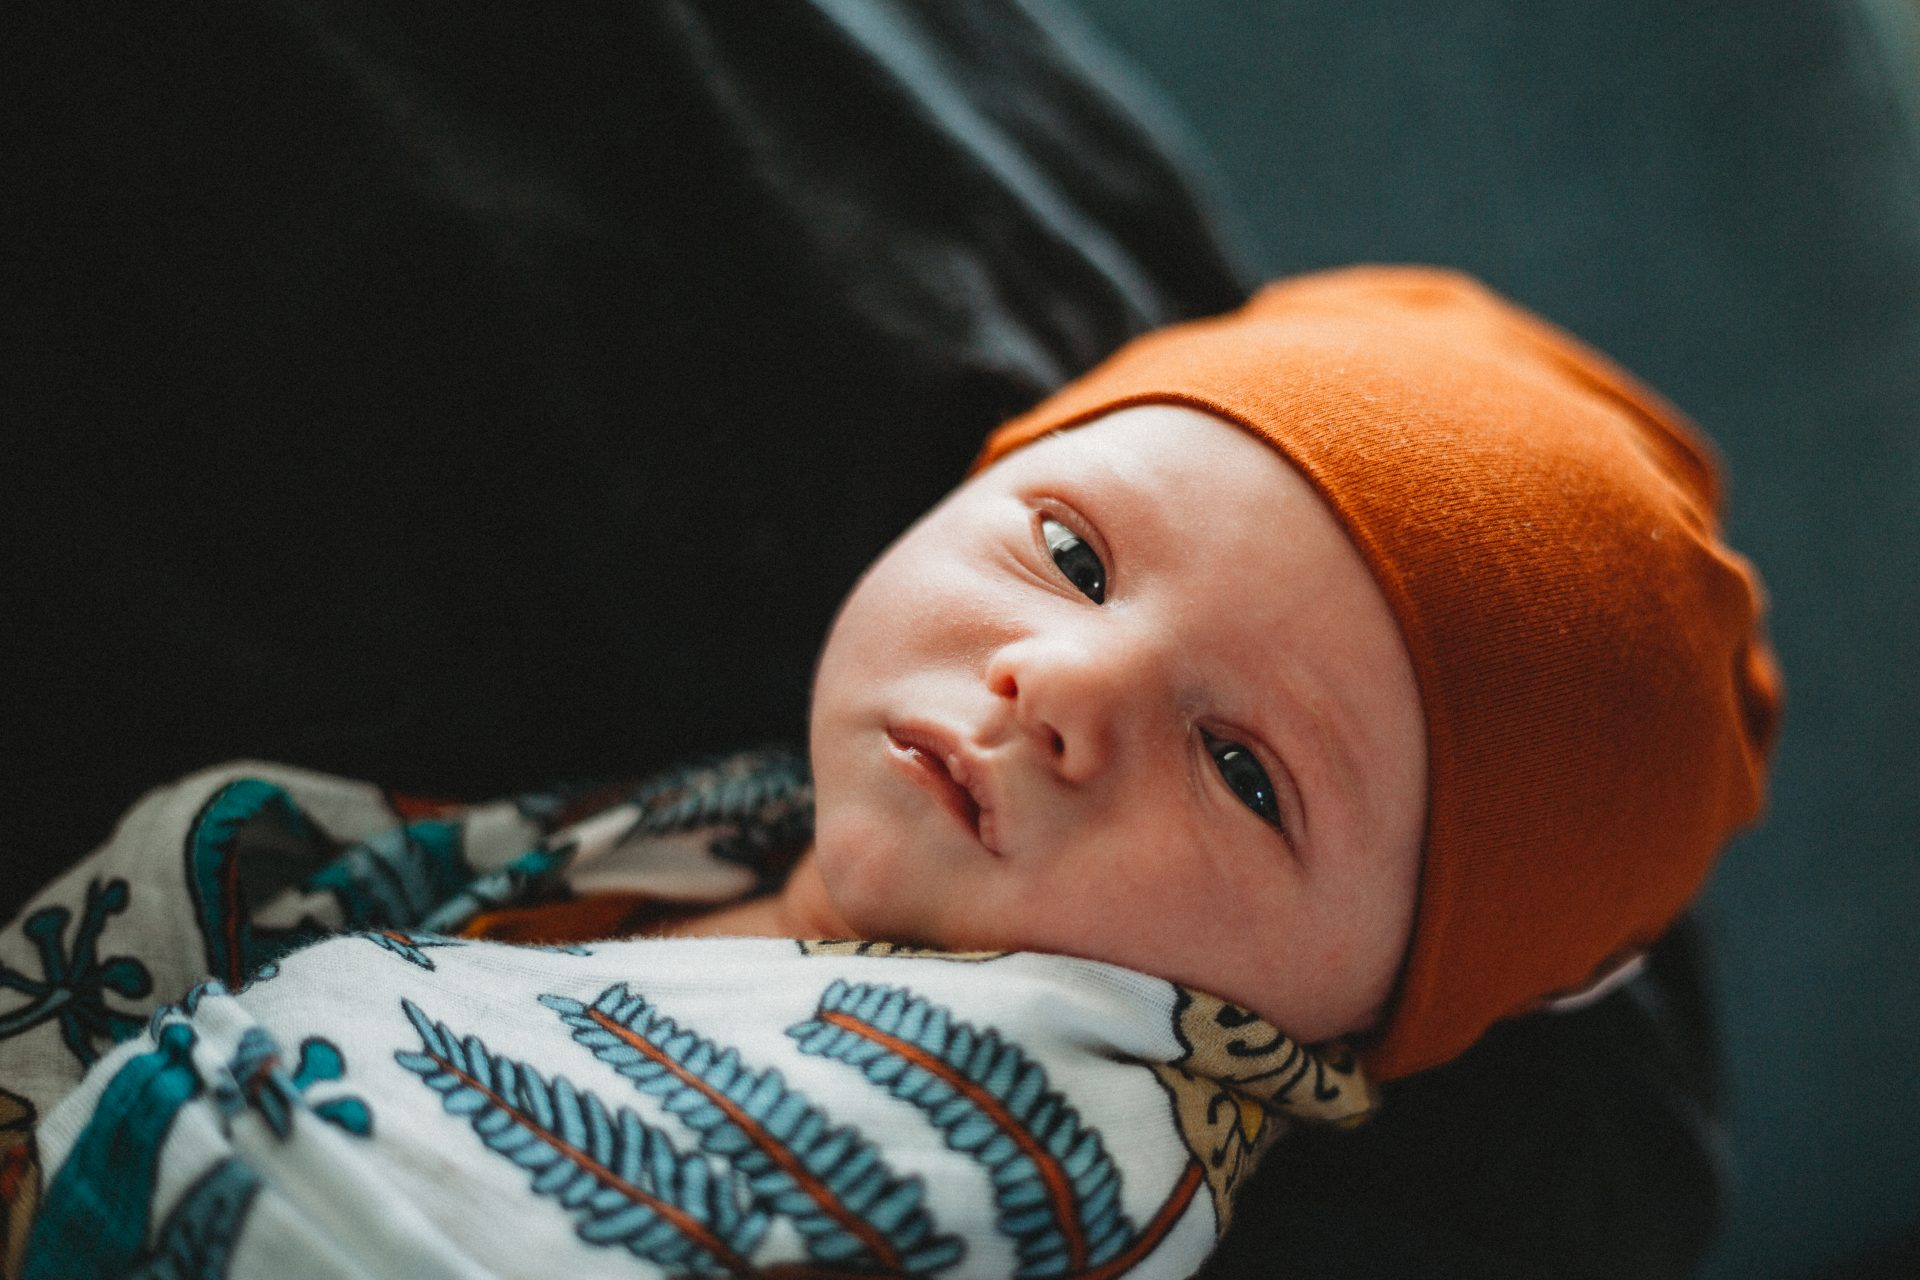 Newborn baby boy in his father's arms, turned to look at camera